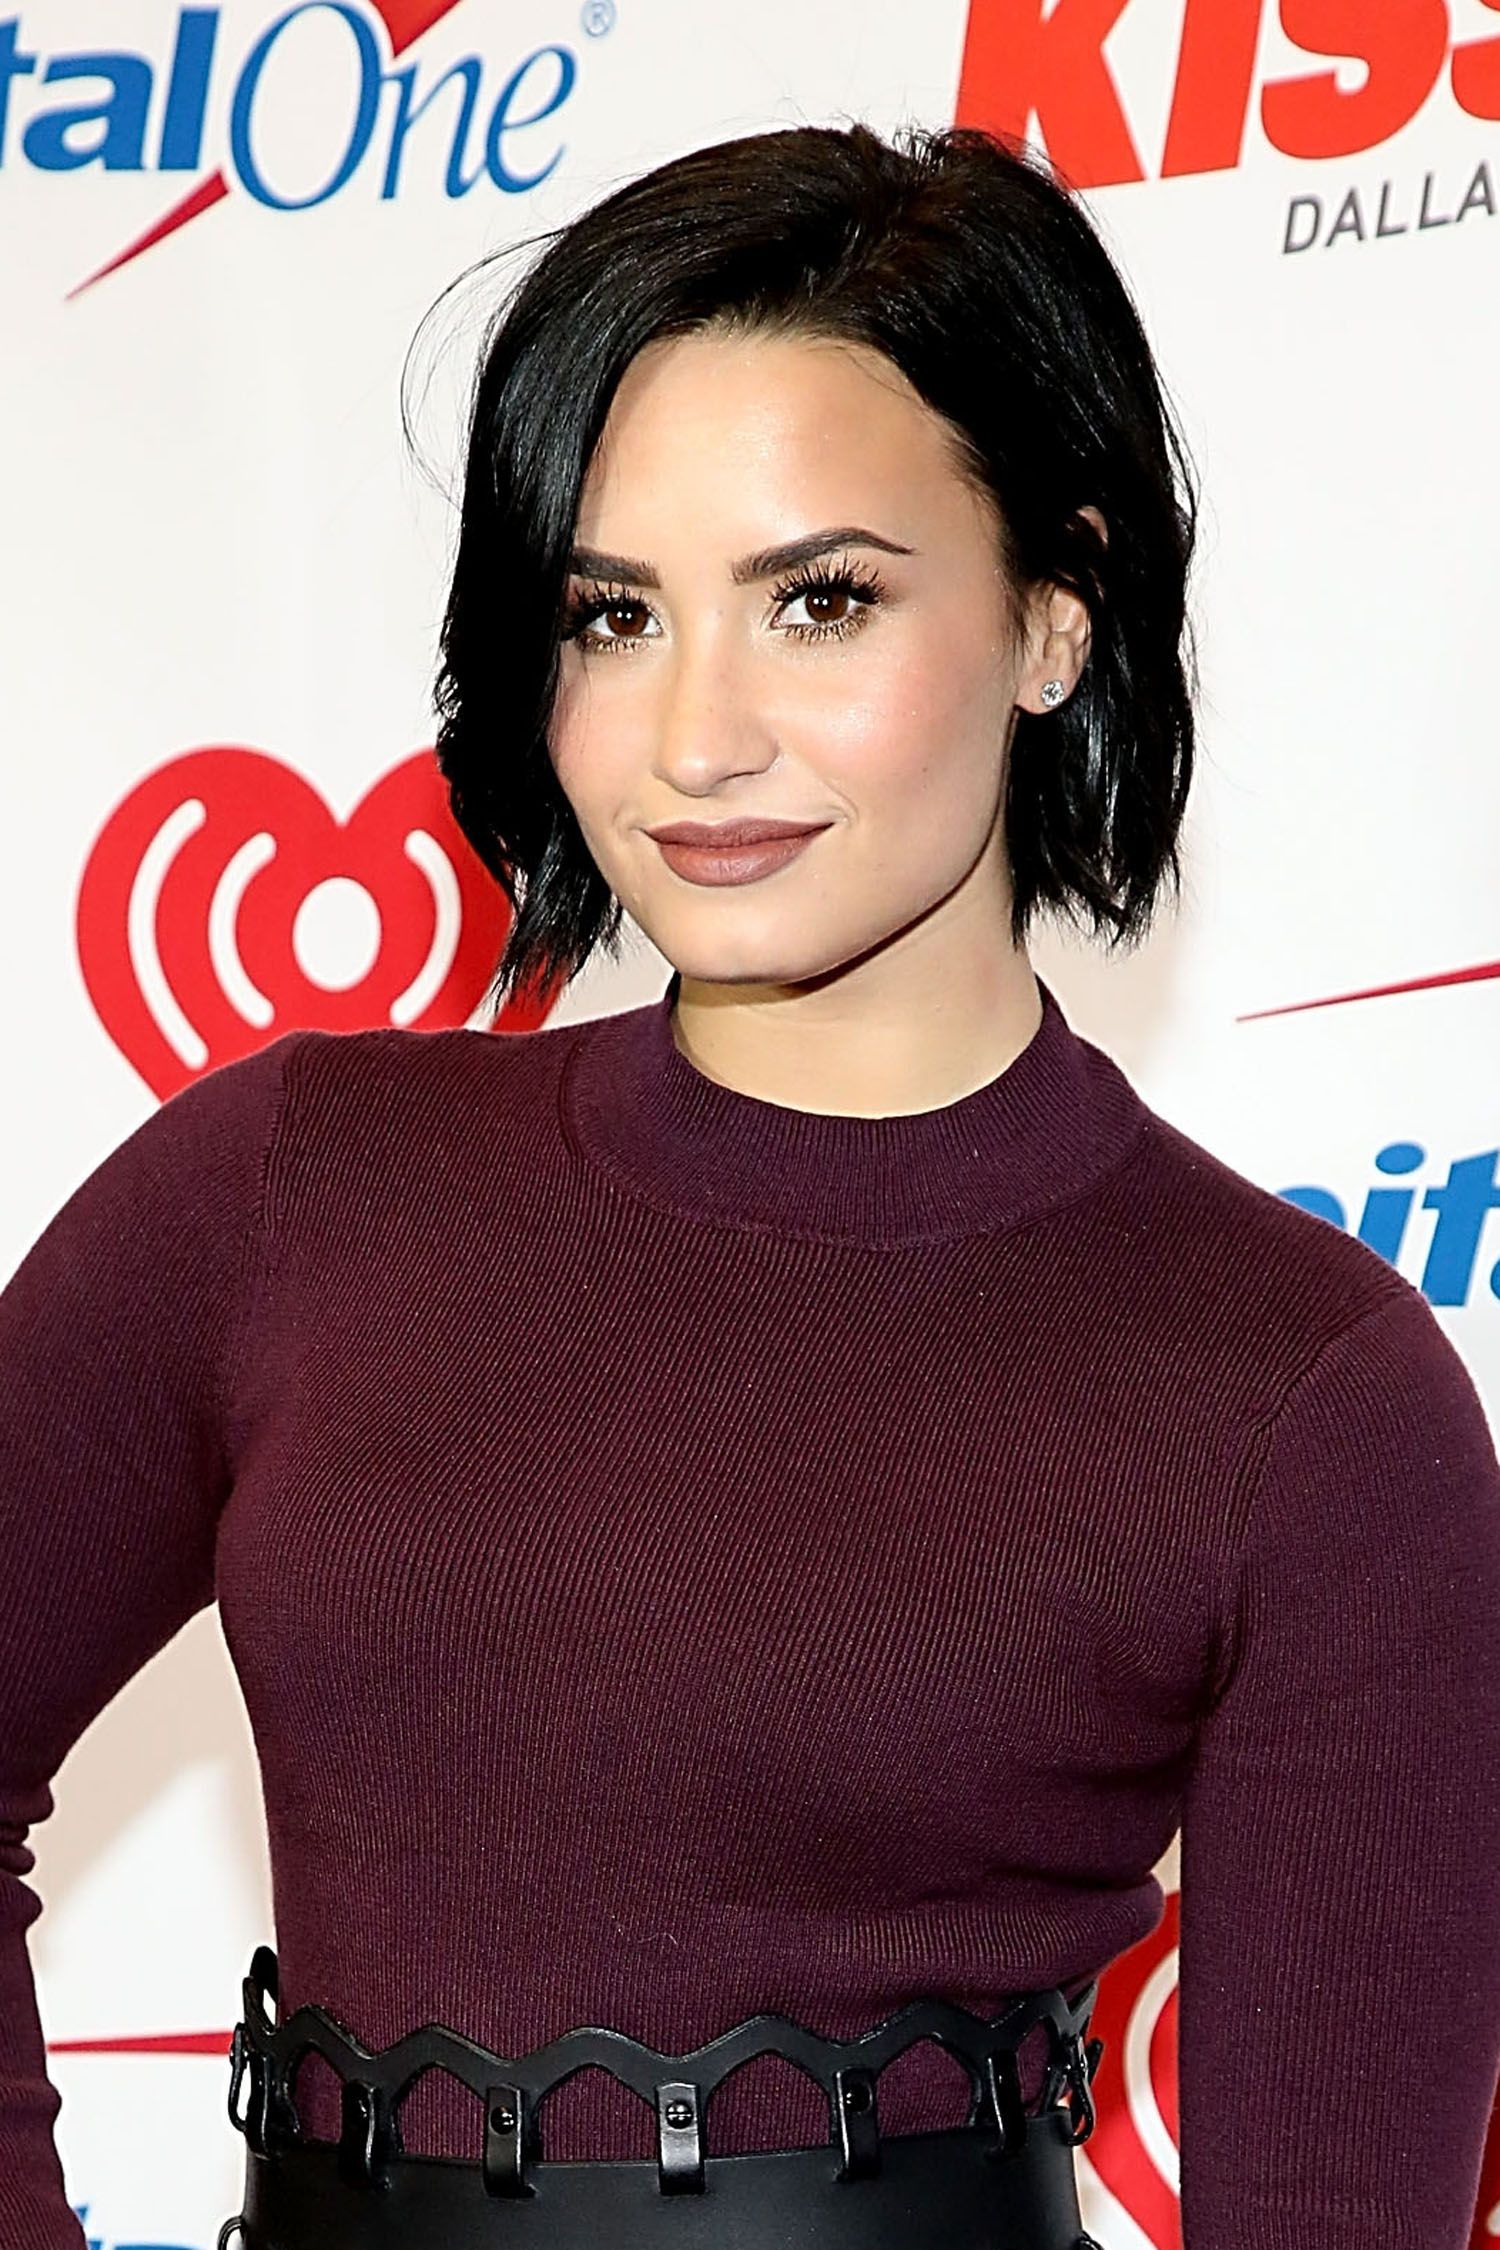 <p><strong>Inspired by: </strong>Demi Lovato</p><p><strong>Get the Look: </strong>The punk-ish, greige lip is having a moment, and it's super fun with an edgy NYE outfit. To nail the clean, matte finish, start by using a lip pencil to build a color base, then top it off with a liquid lipstick.</p>